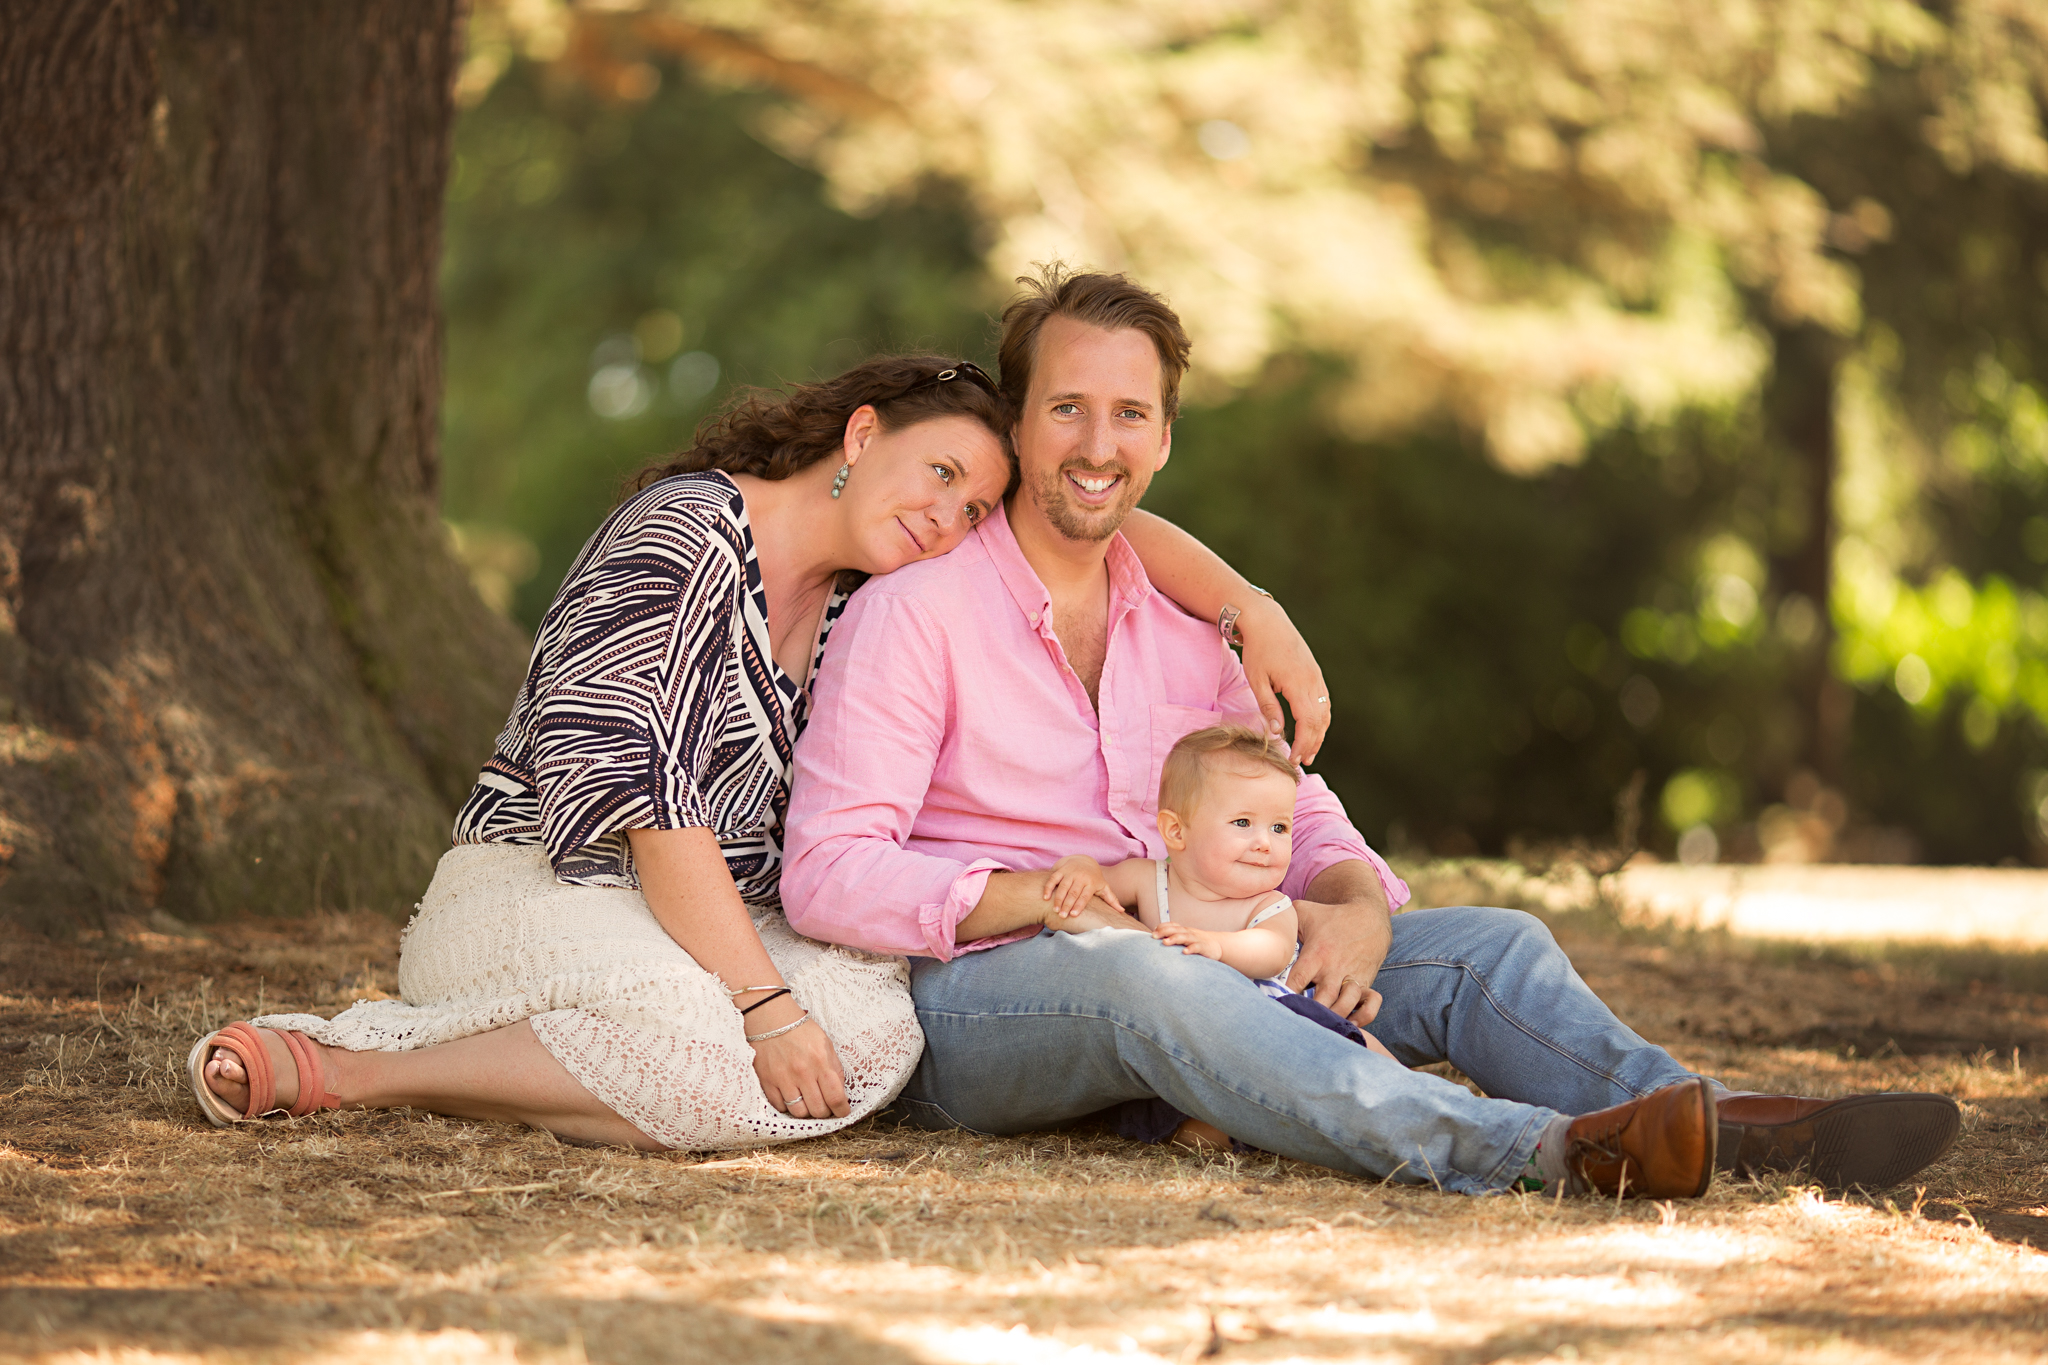 Family Portraits - Milton Keynes Photographer.jpg